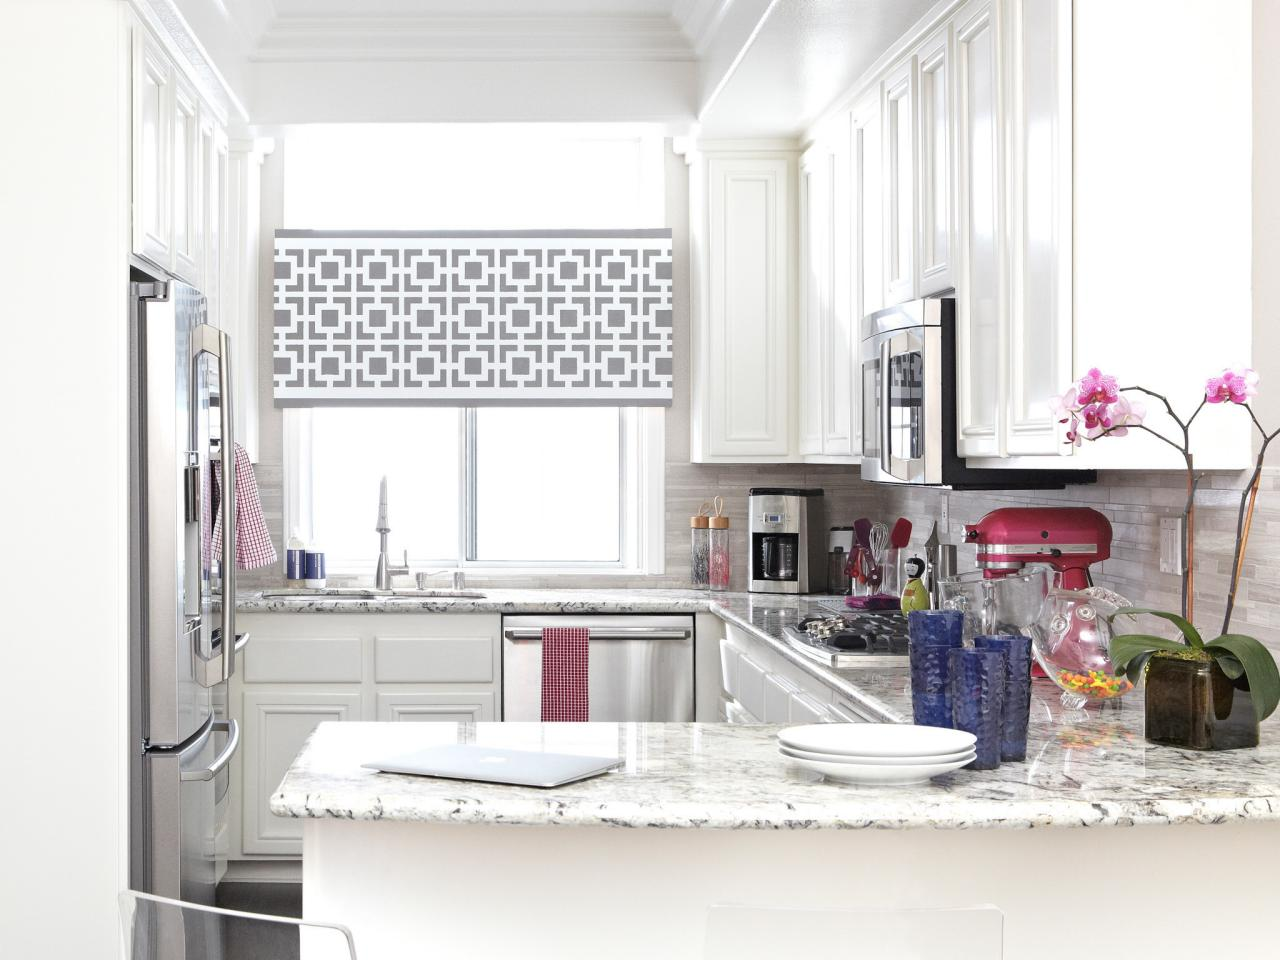 Half Way Window Curtain In Grey And White Patterns L Shape Kitchen Counter  Kitchen Cabinet System